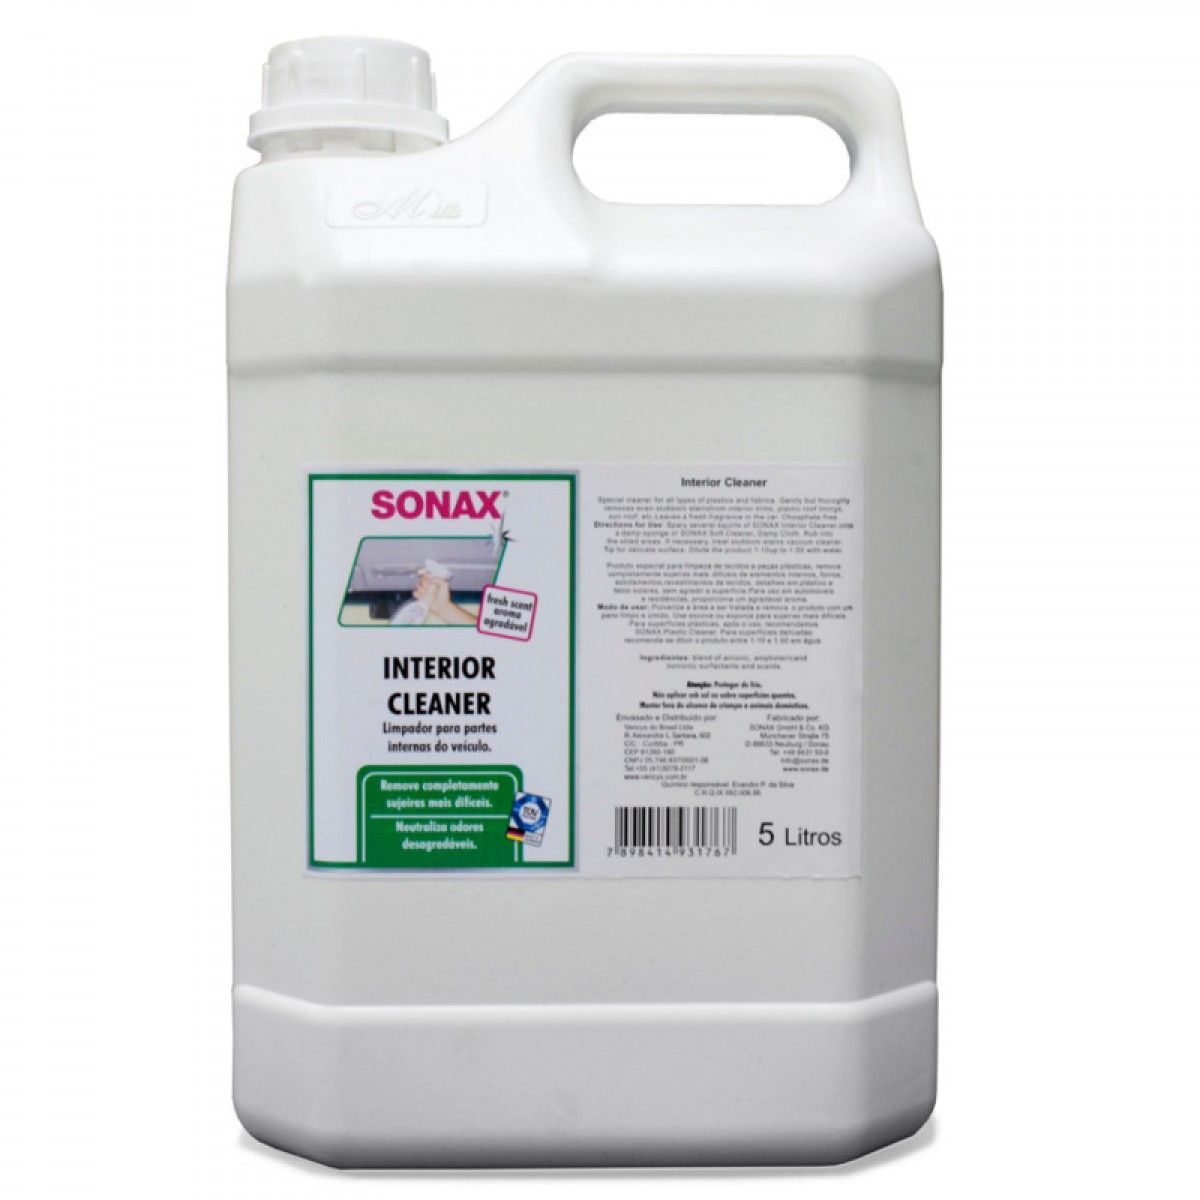 Interior Cleaner SONAX 5L